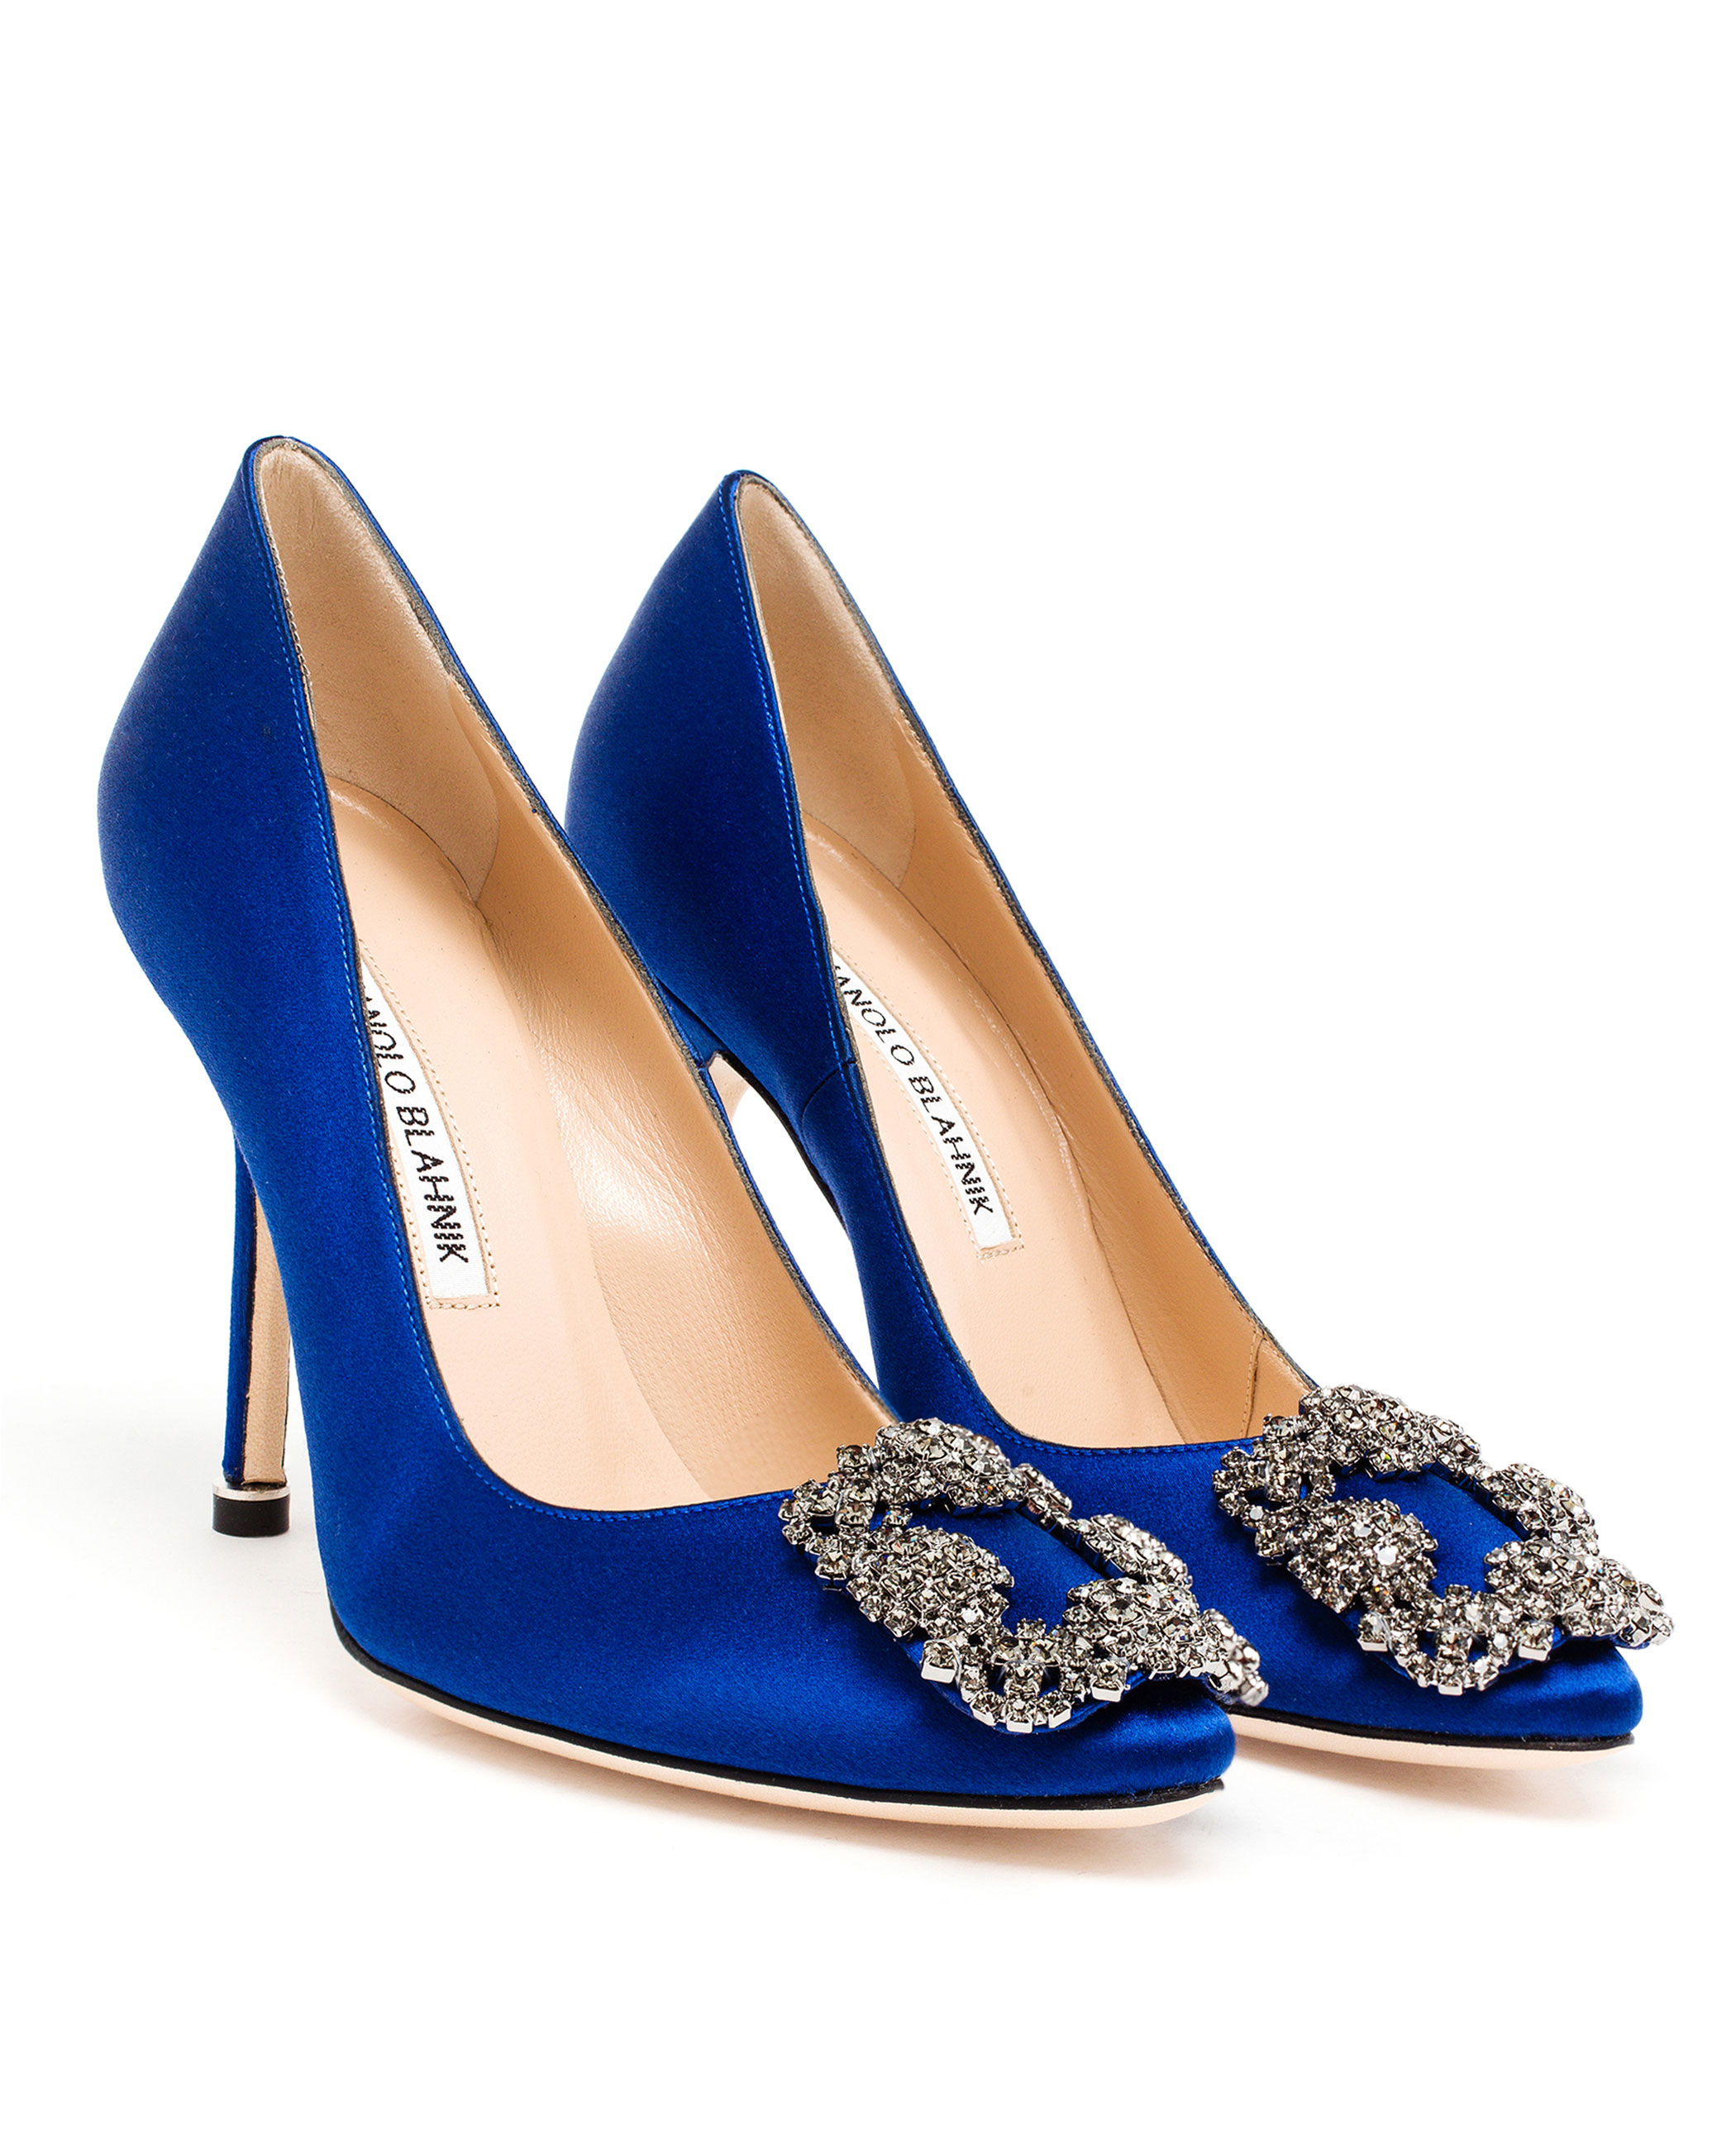 Lyst manolo blahnik hangisi embellished satin pumps in blue for Shoes by manolo blahnik